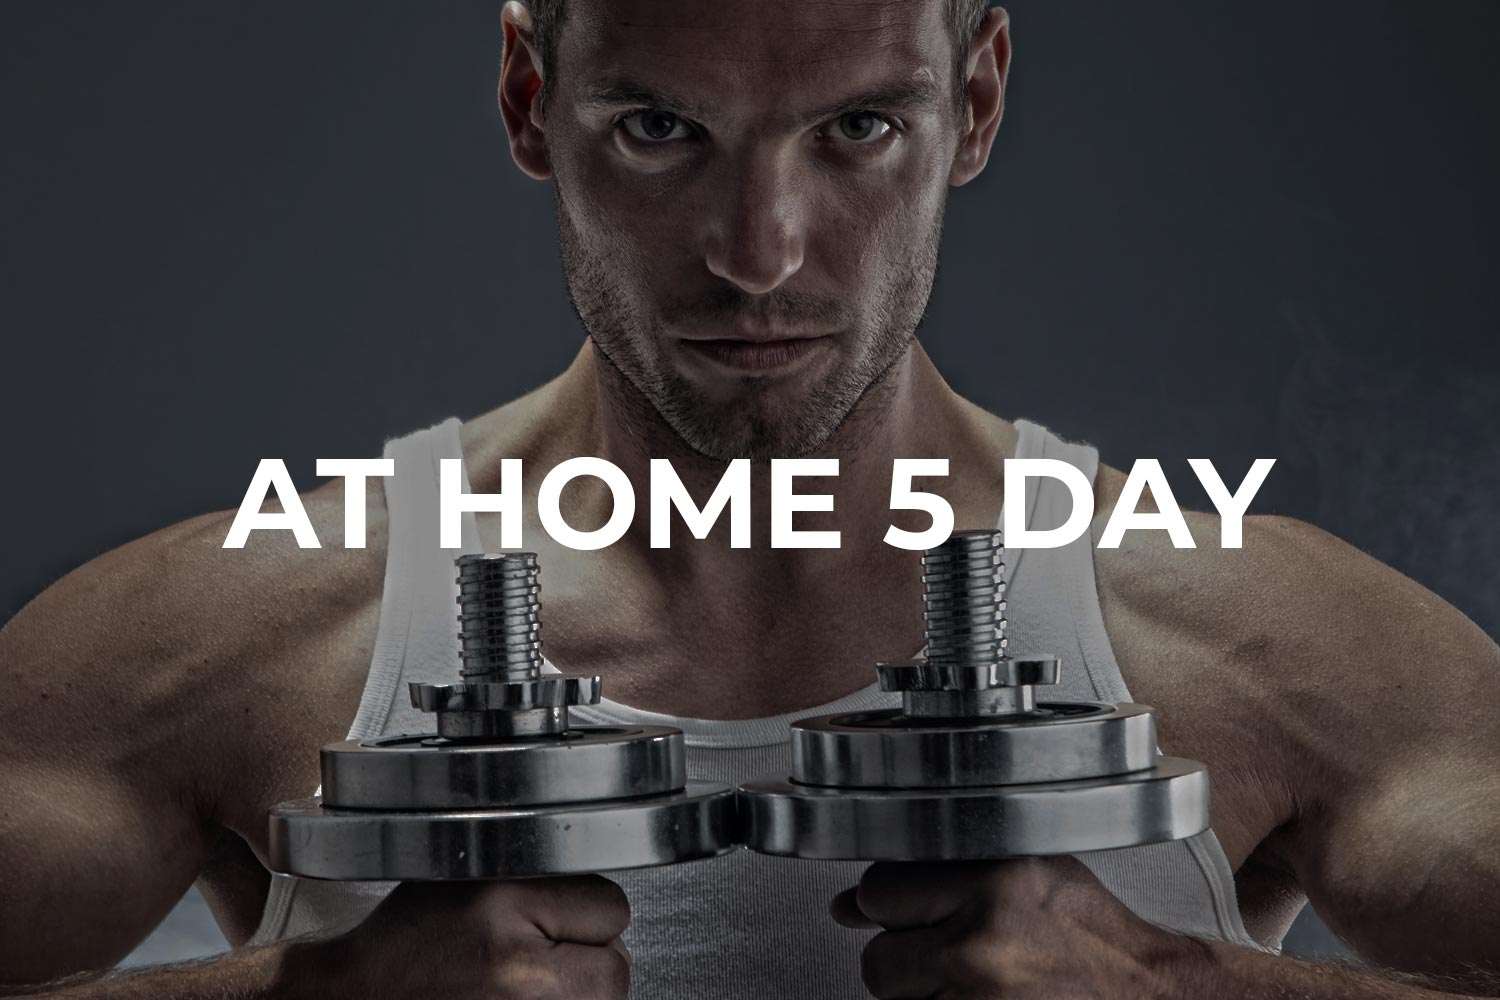 At Home 5 Day